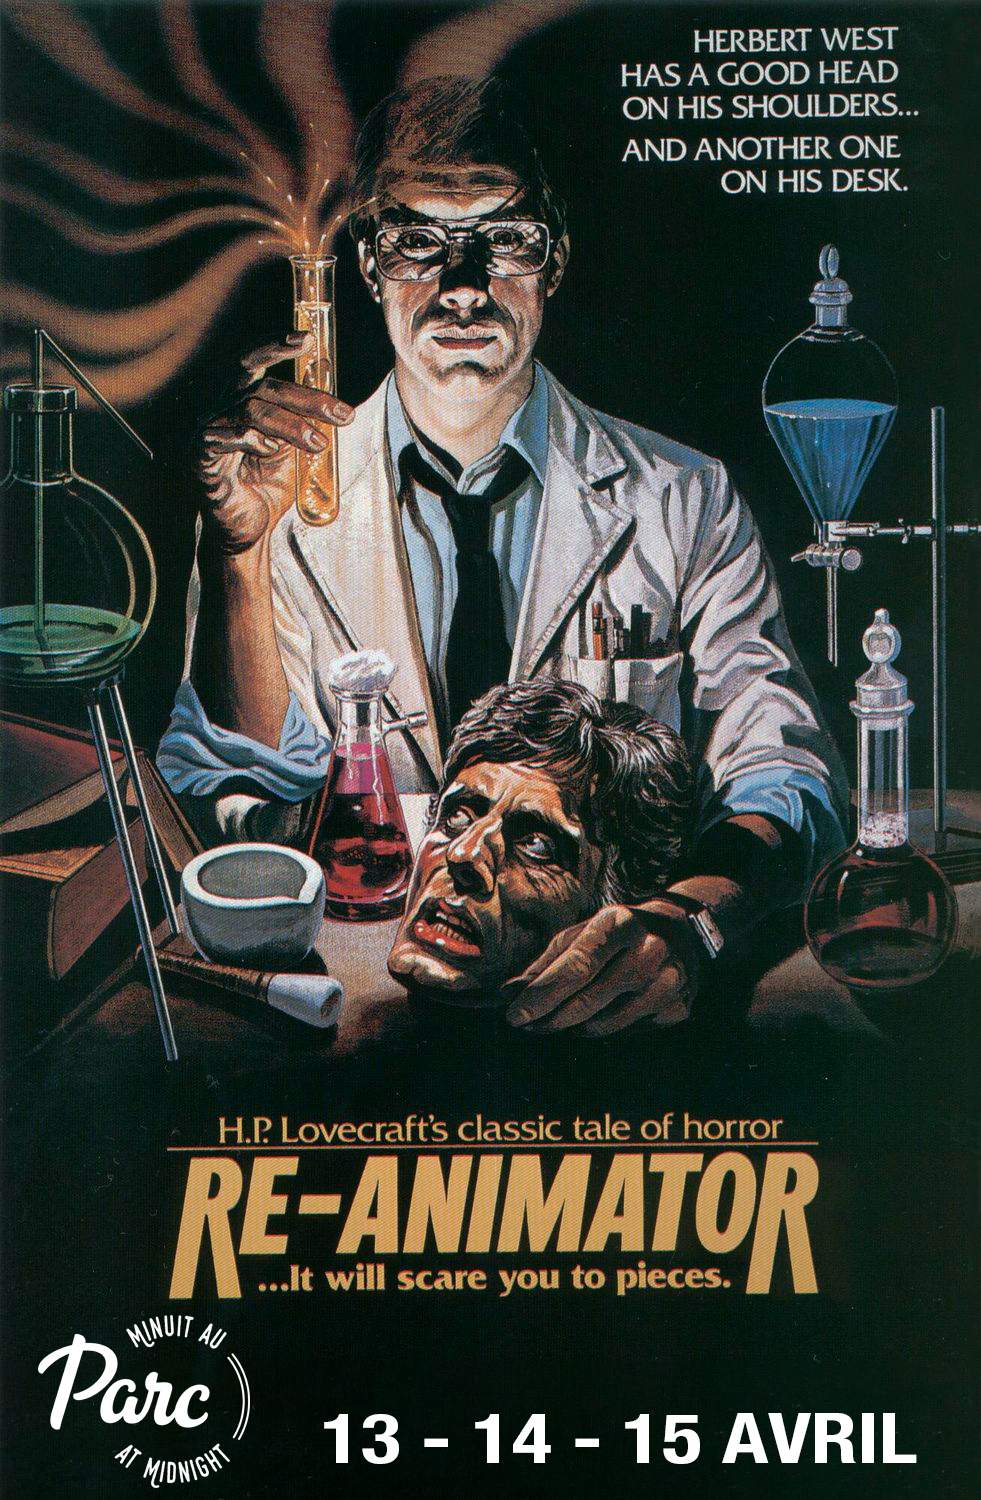 PARC AT MIDNIGHT: RE-ANIMATOR